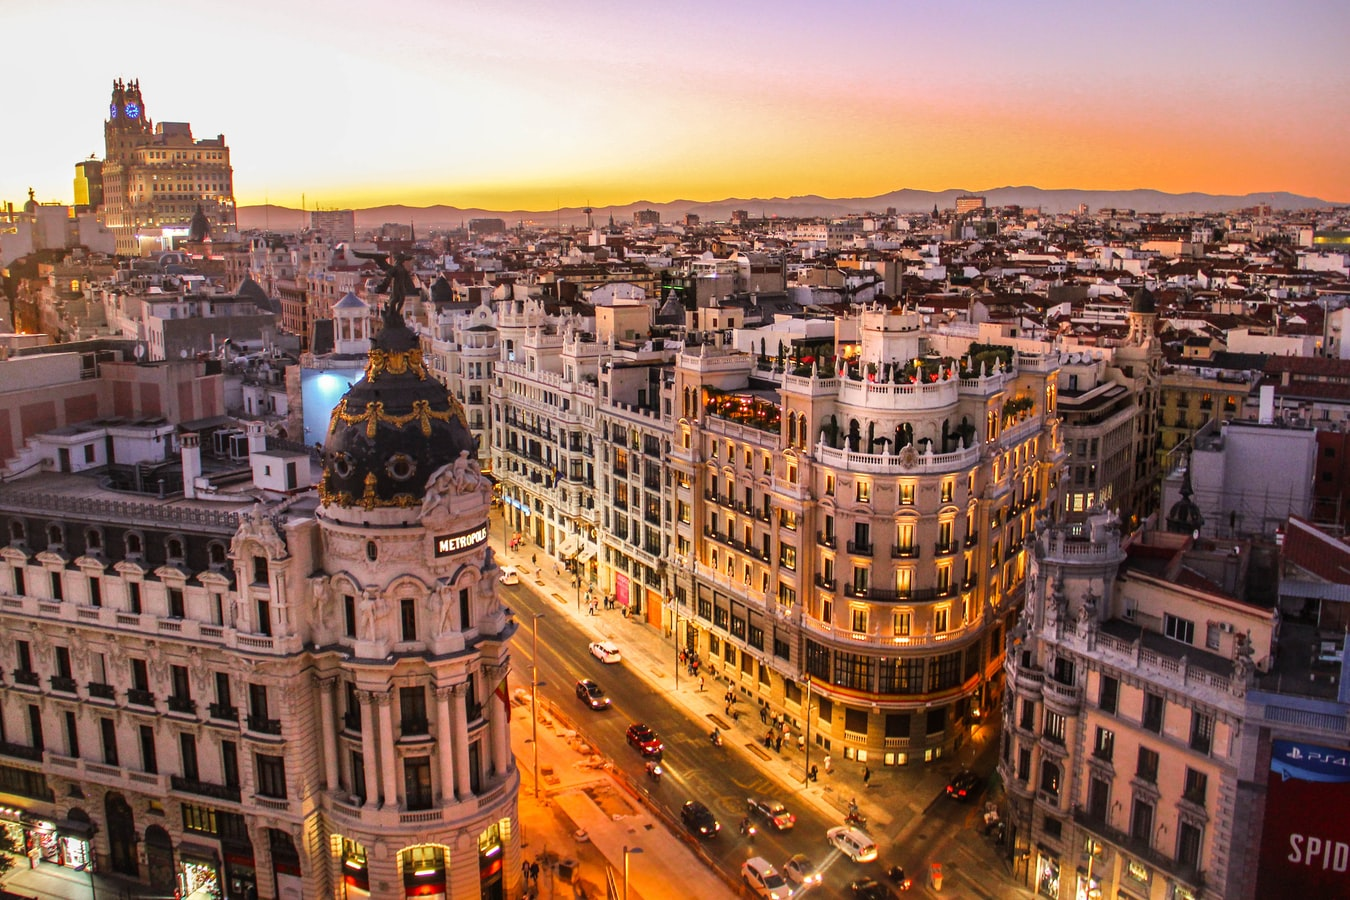 Sunset view of Gran Via in Madrid (Photo: Florian Wehde)